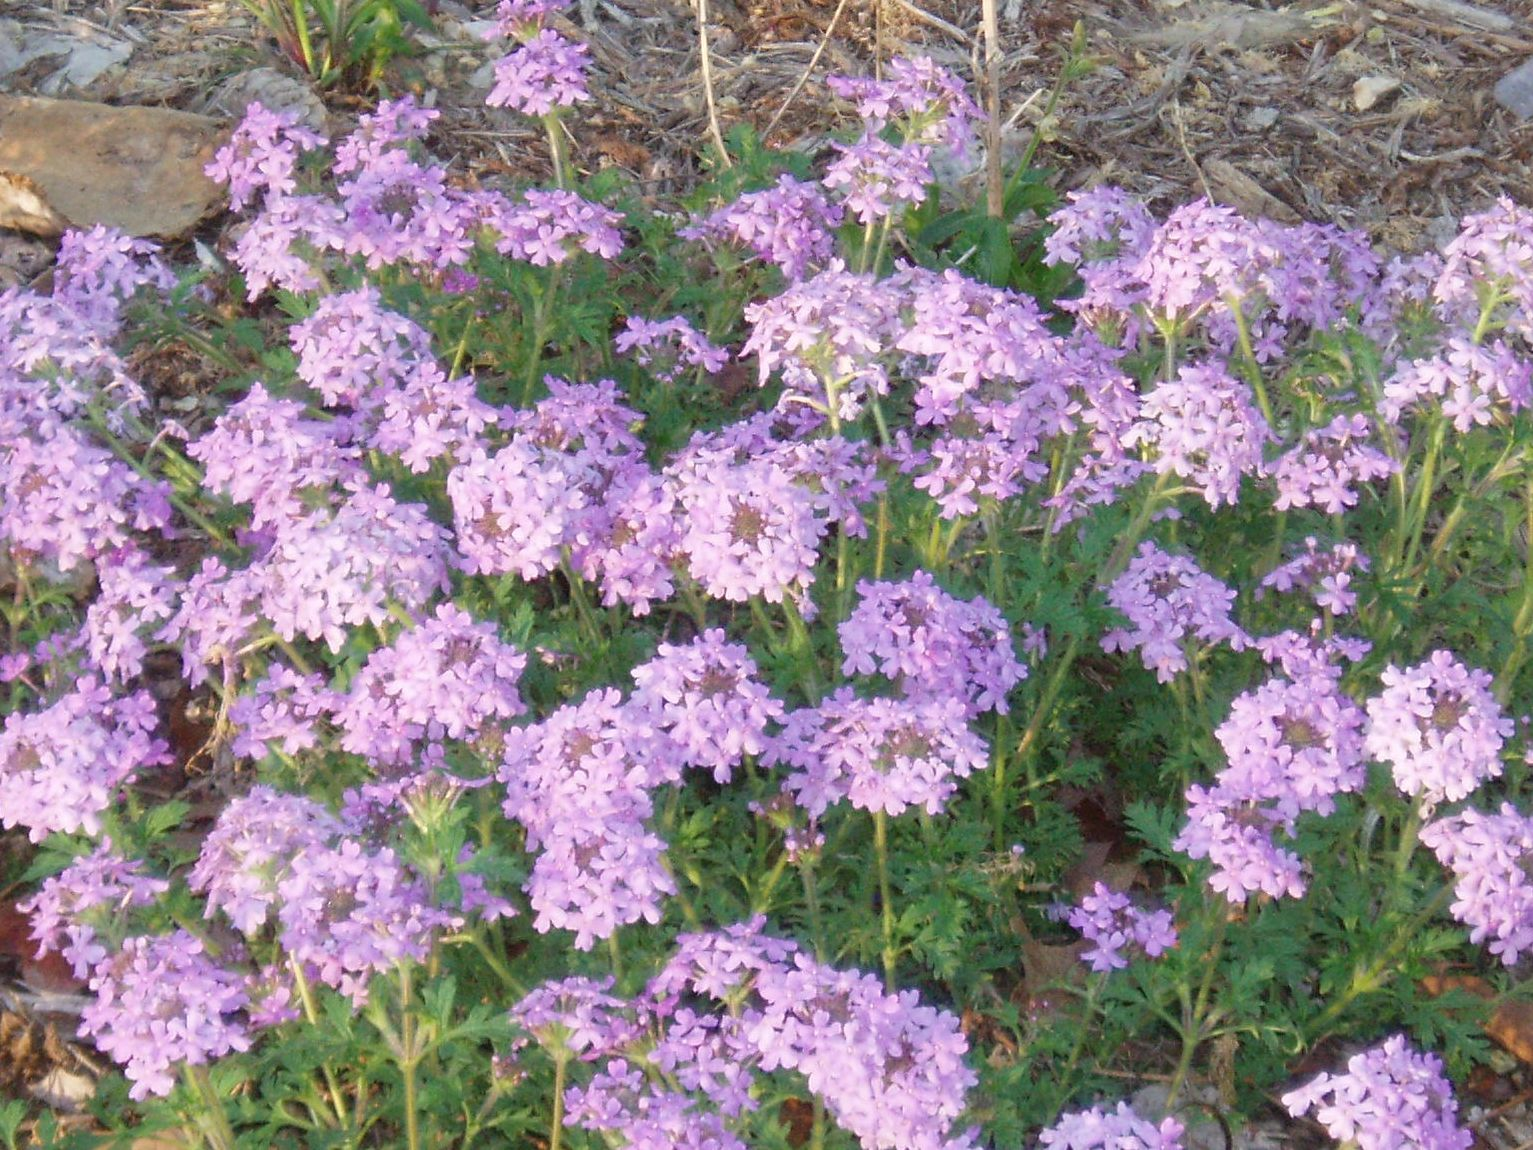 "{""blocks"":[{""key"":""ejd8u"",""text"":""Glandularia canaden Verbena canadensis Rose Vervain - potted plants email john@easywildflowers.com"",""type"":""unstyled"",""depth"":0,""inlineStyleRanges"":[],""entityRanges"":[],""data"":{}}],""entityMap"":{}}"